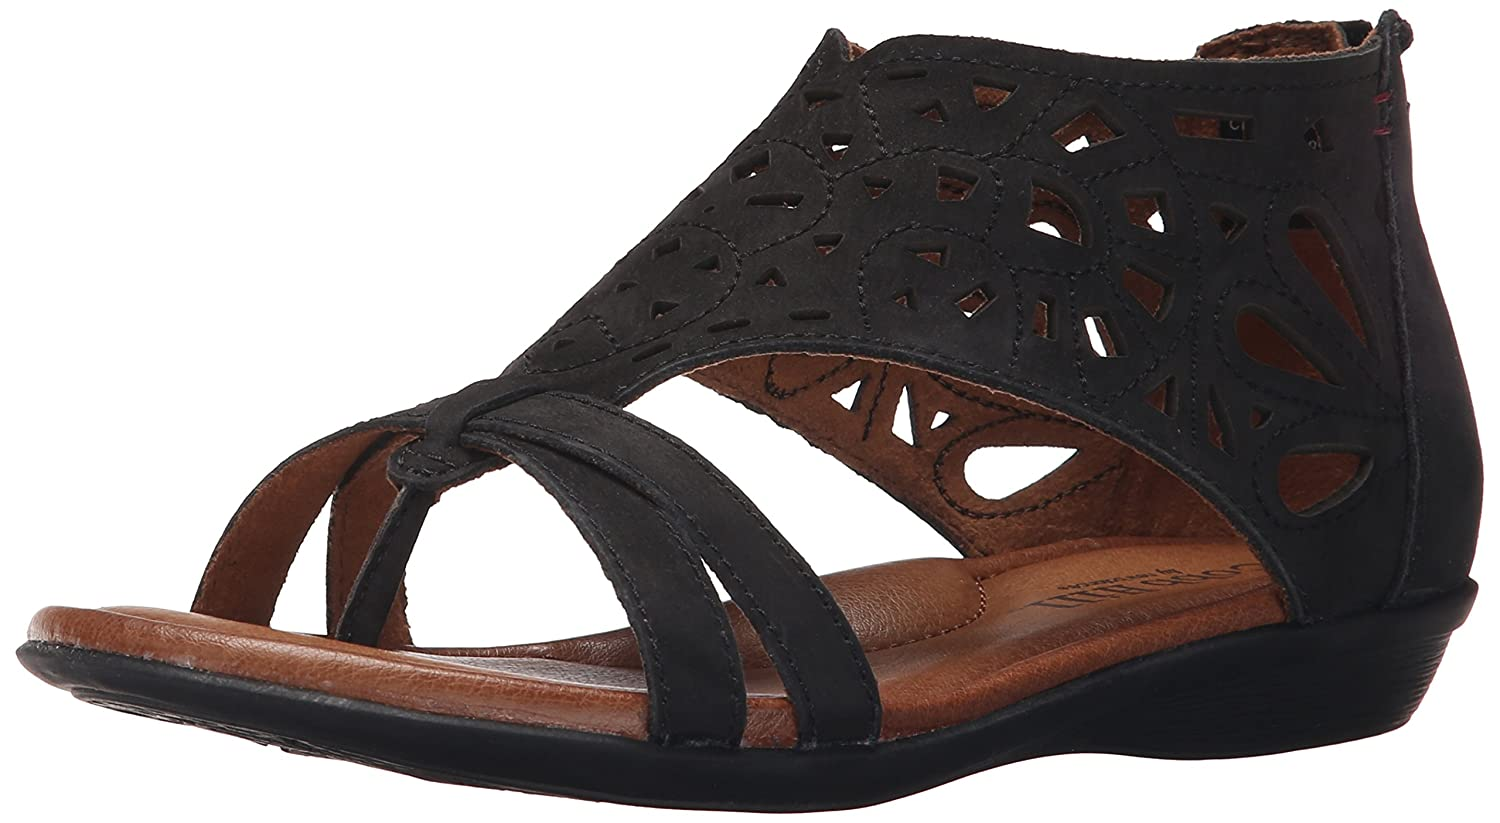 Cobb Hill Rockport Women's Jordan-CH Flat Sandal B074198MMQ 6 C/D US|Black